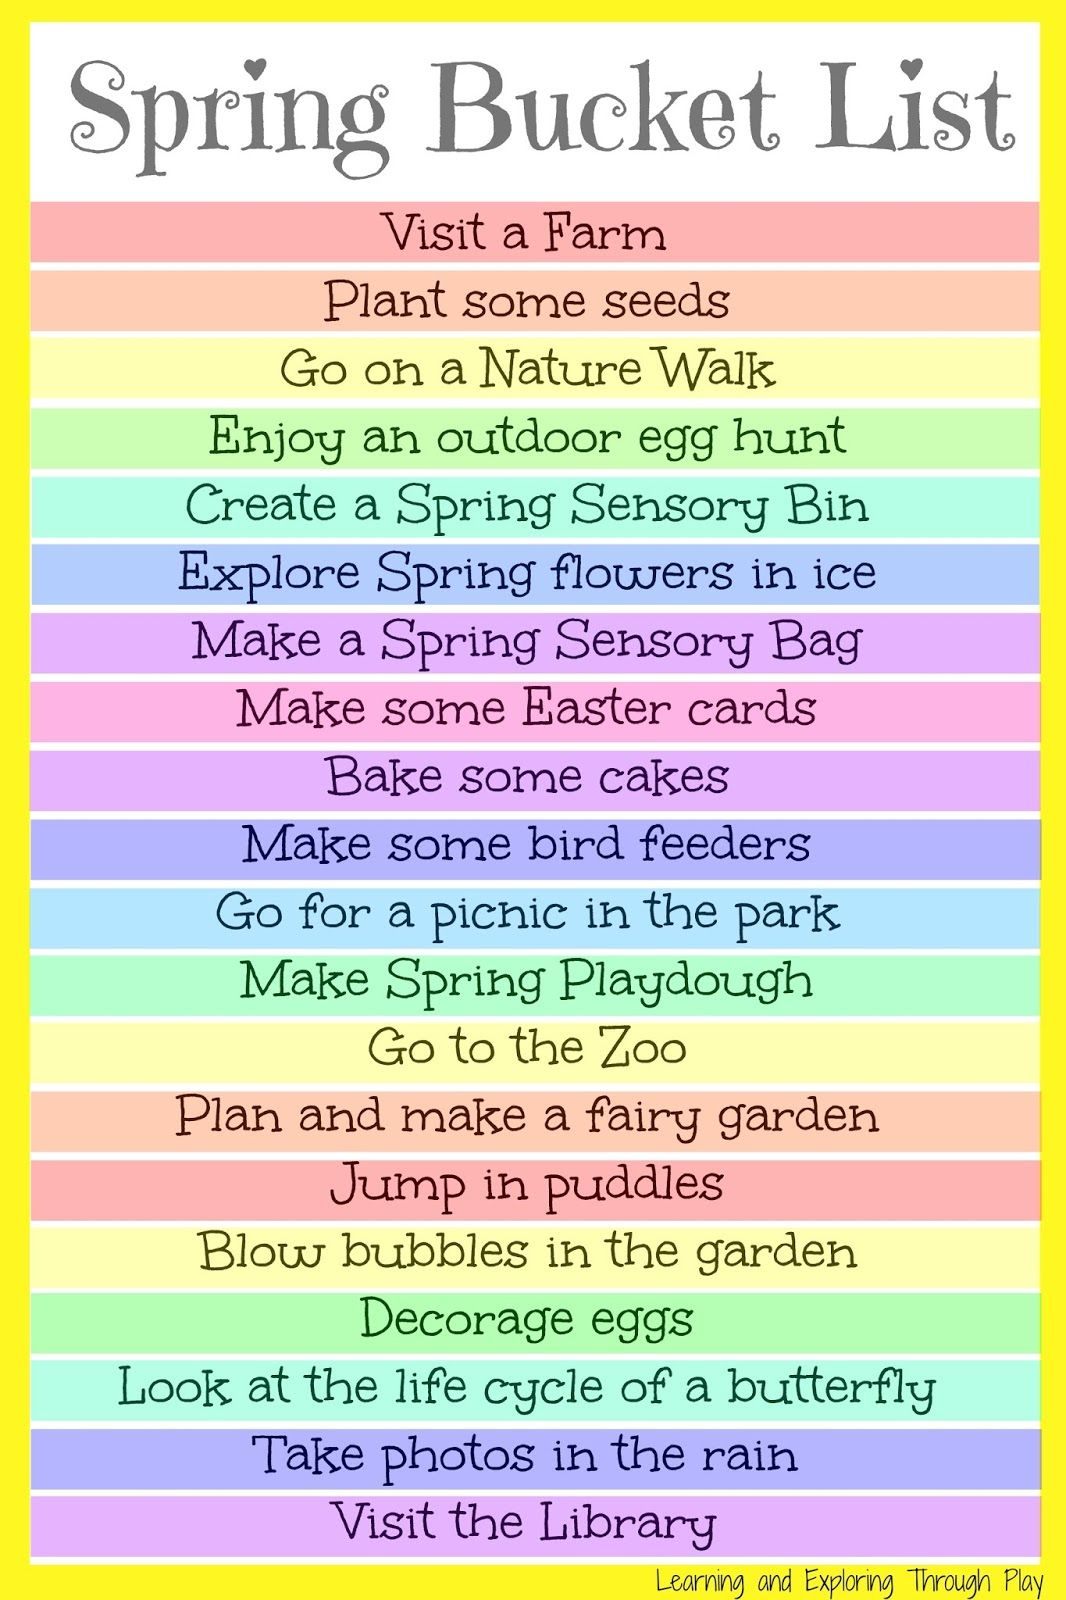 Spring Bucket List For Kids and Families